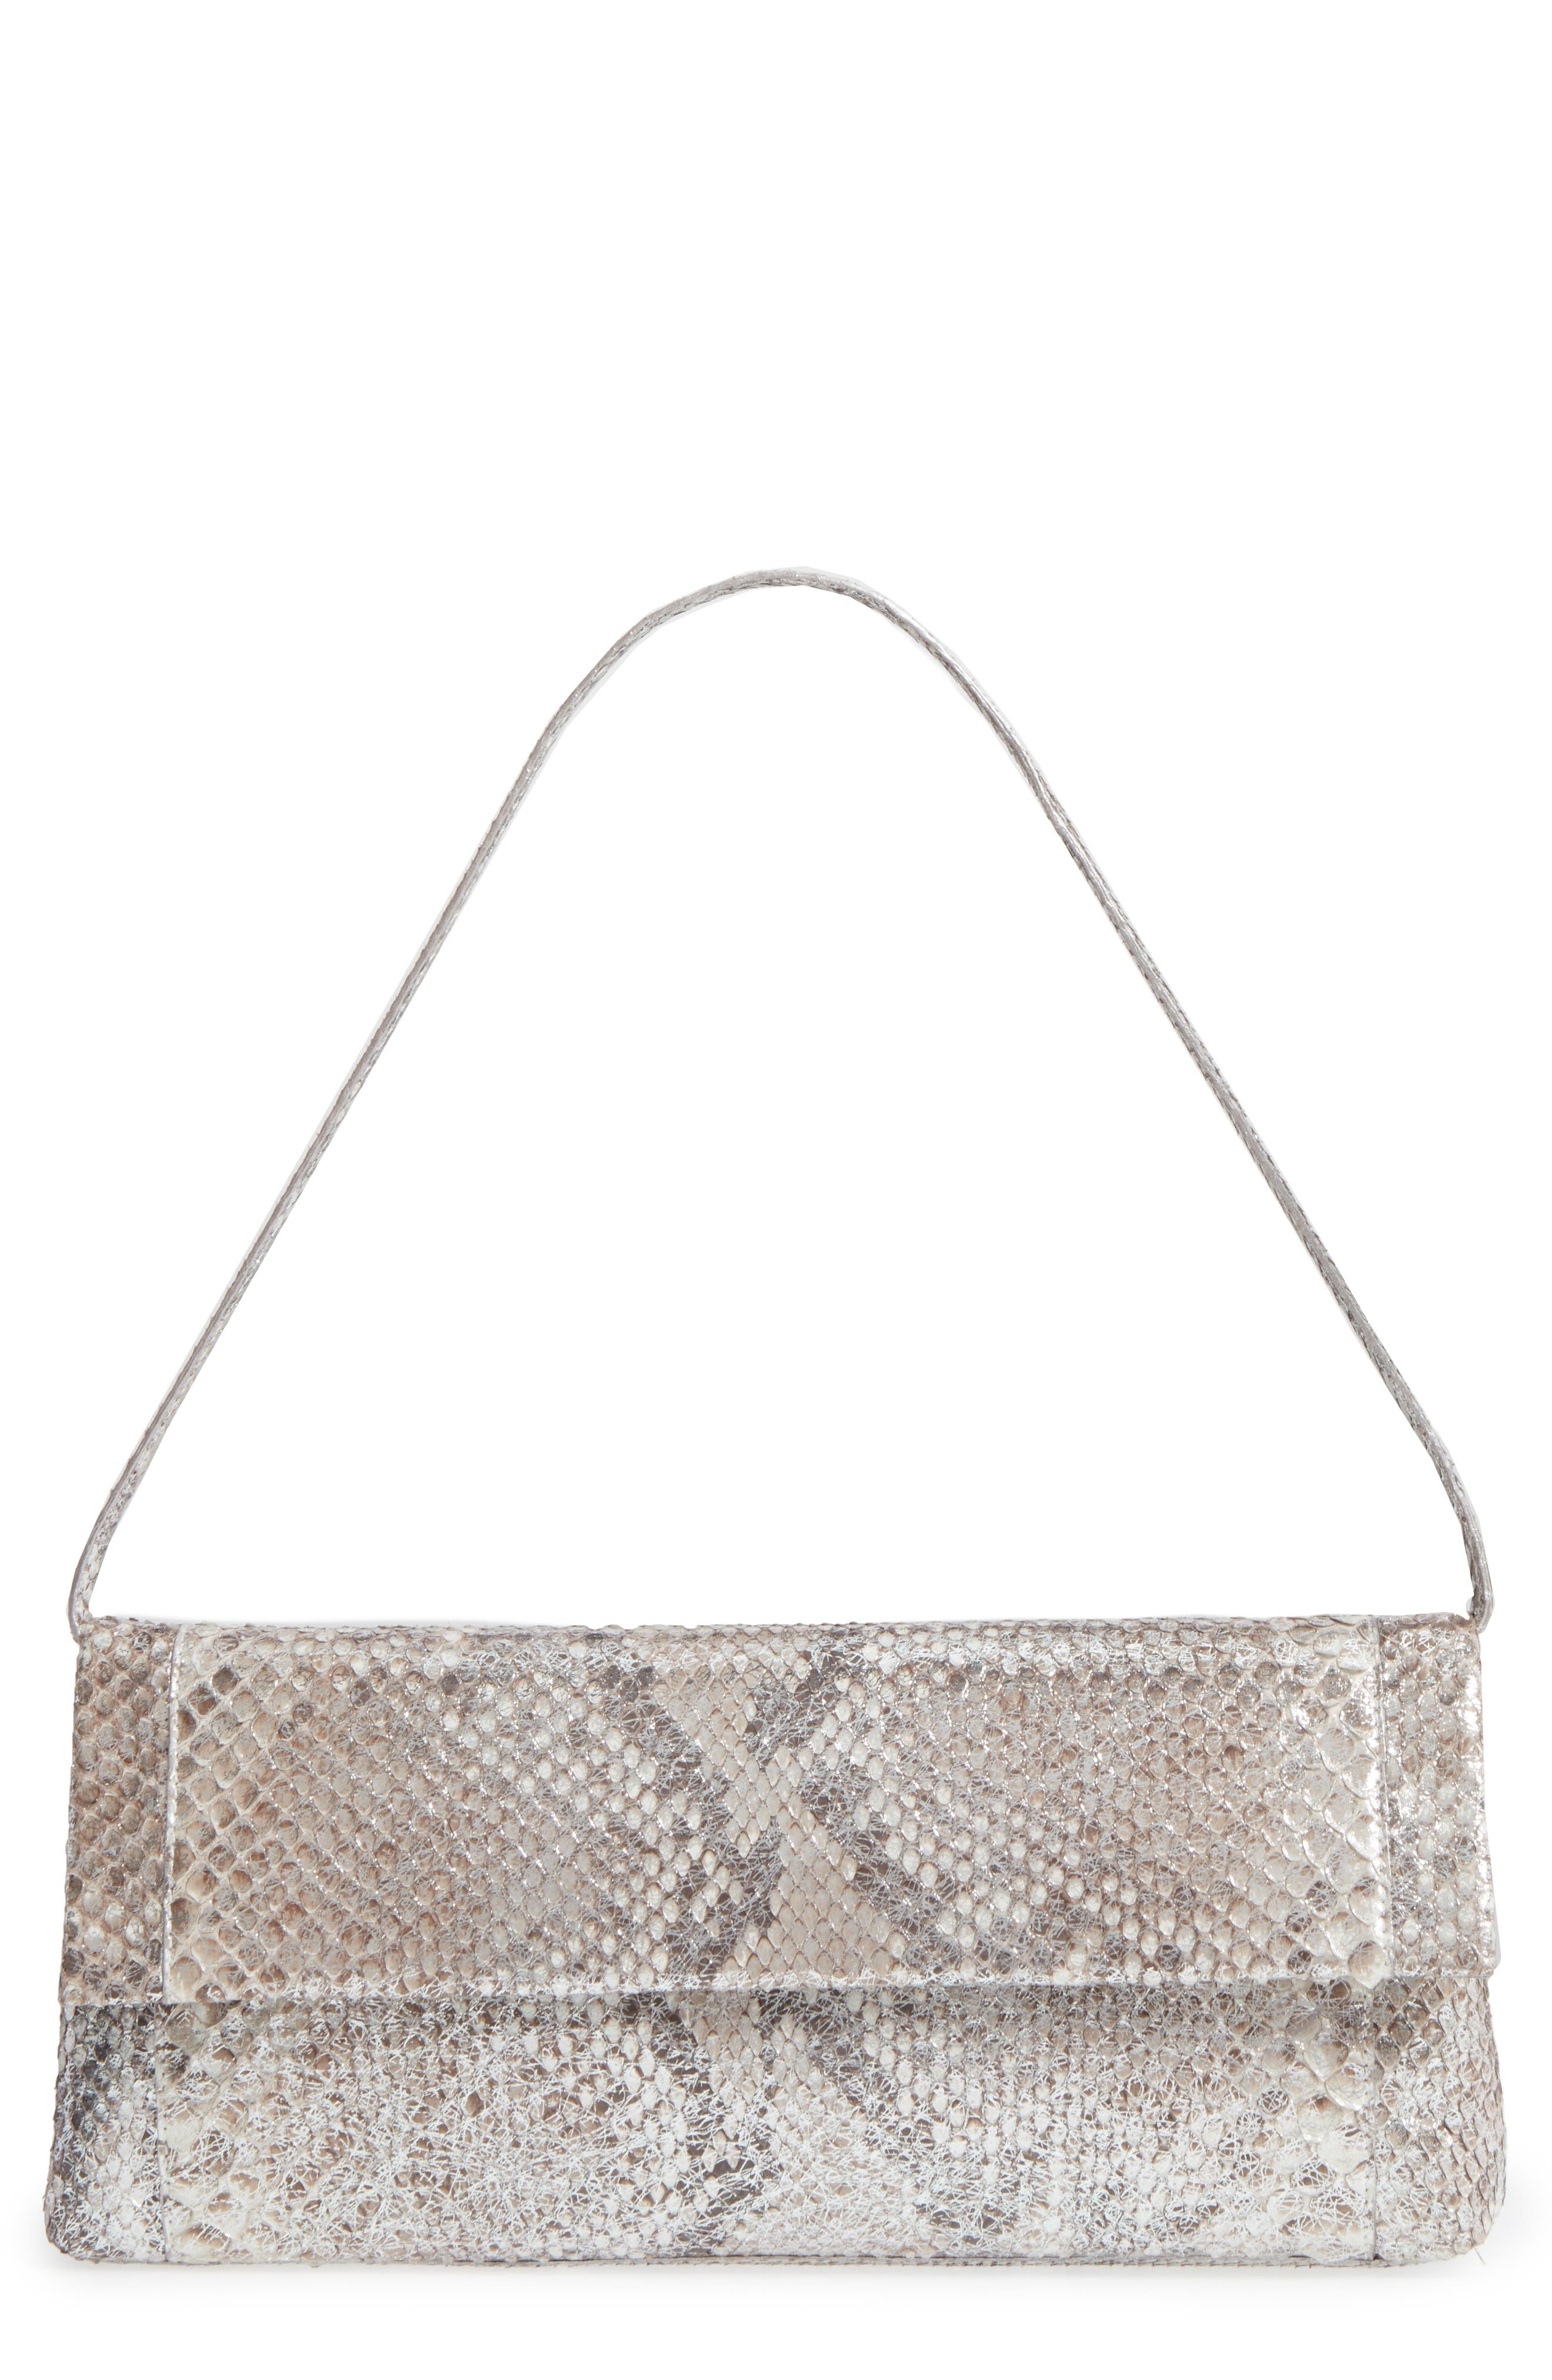 Main Image - Nancy Gonzalez Gotham Genuine Python Metallic Clutch